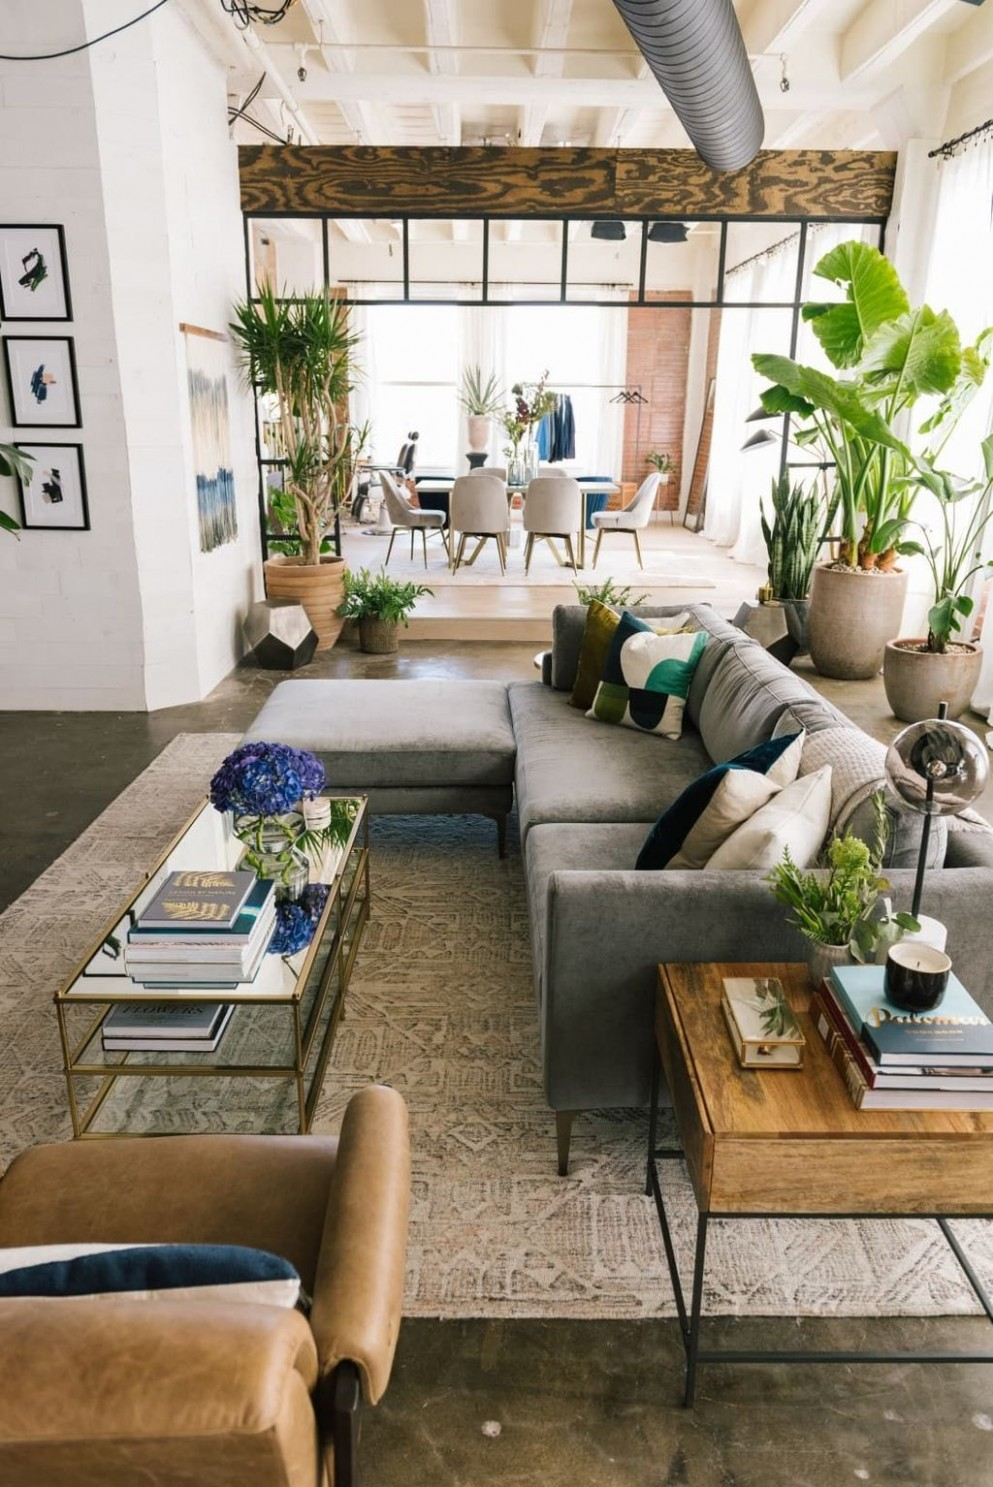 11 Stunning Loft Apartment Decorating Ideas You Should Try in 11  - Urban Apartment Decor Ideas